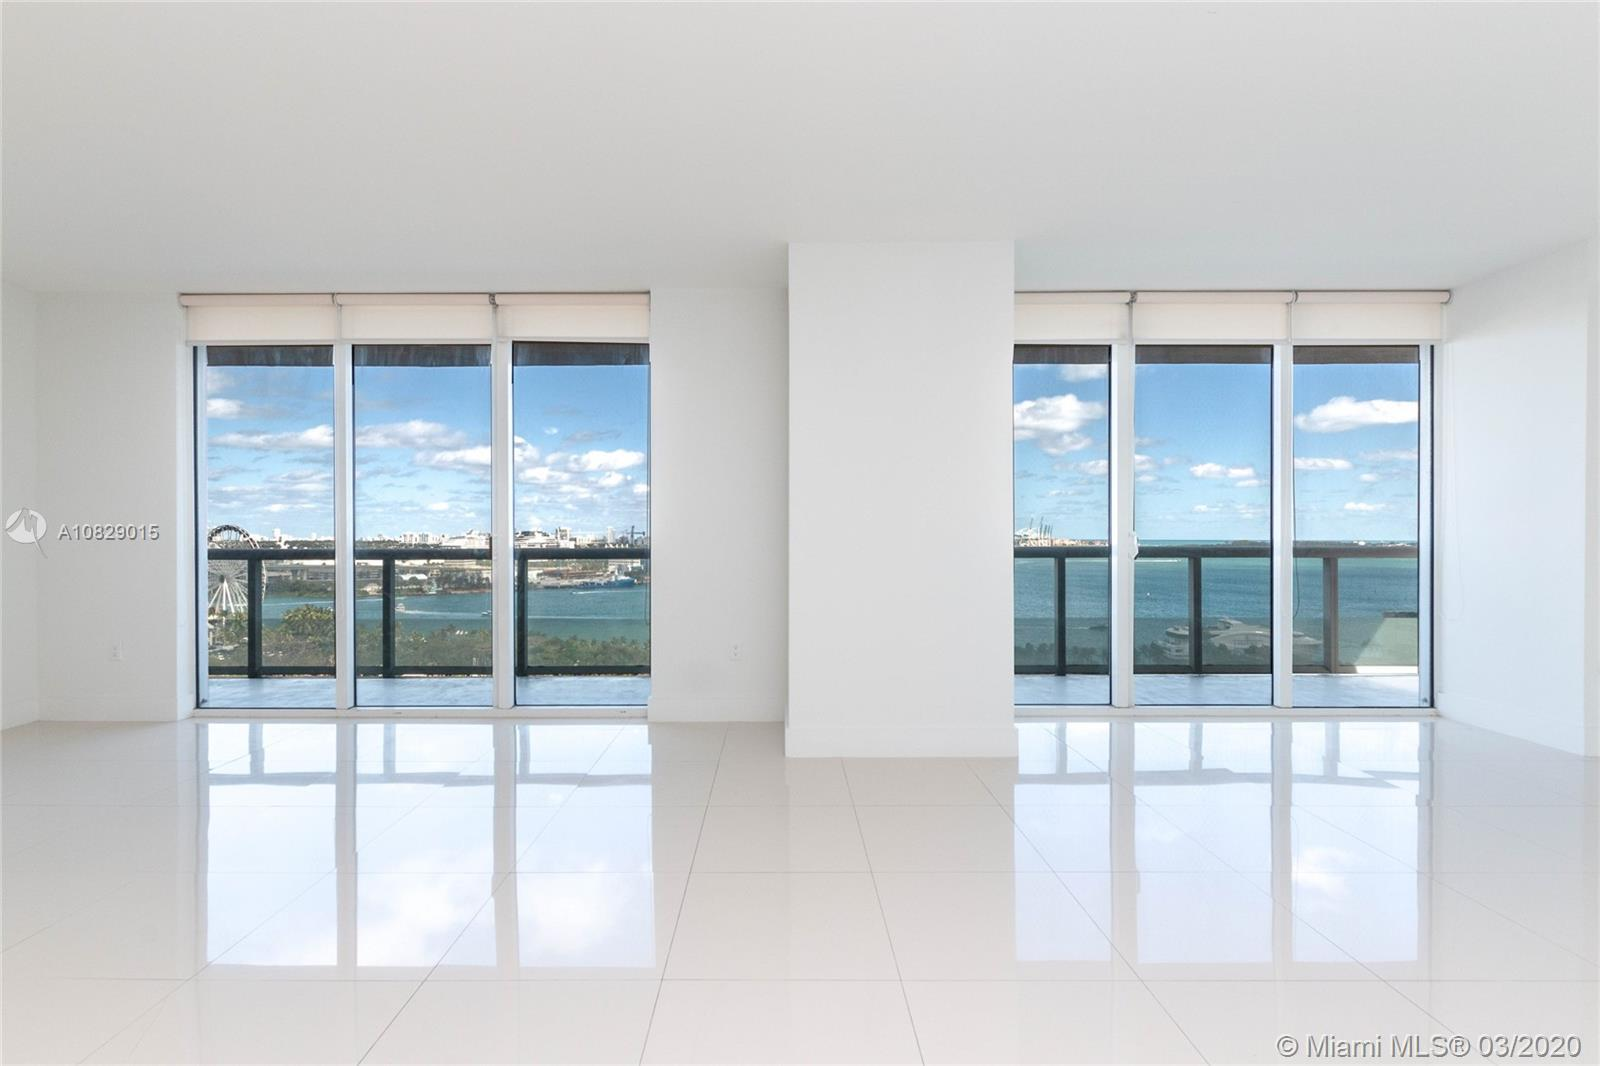 Incredible ocean views, overlooking Bayfront Park , the Port of Miami and South Beach! This spacious